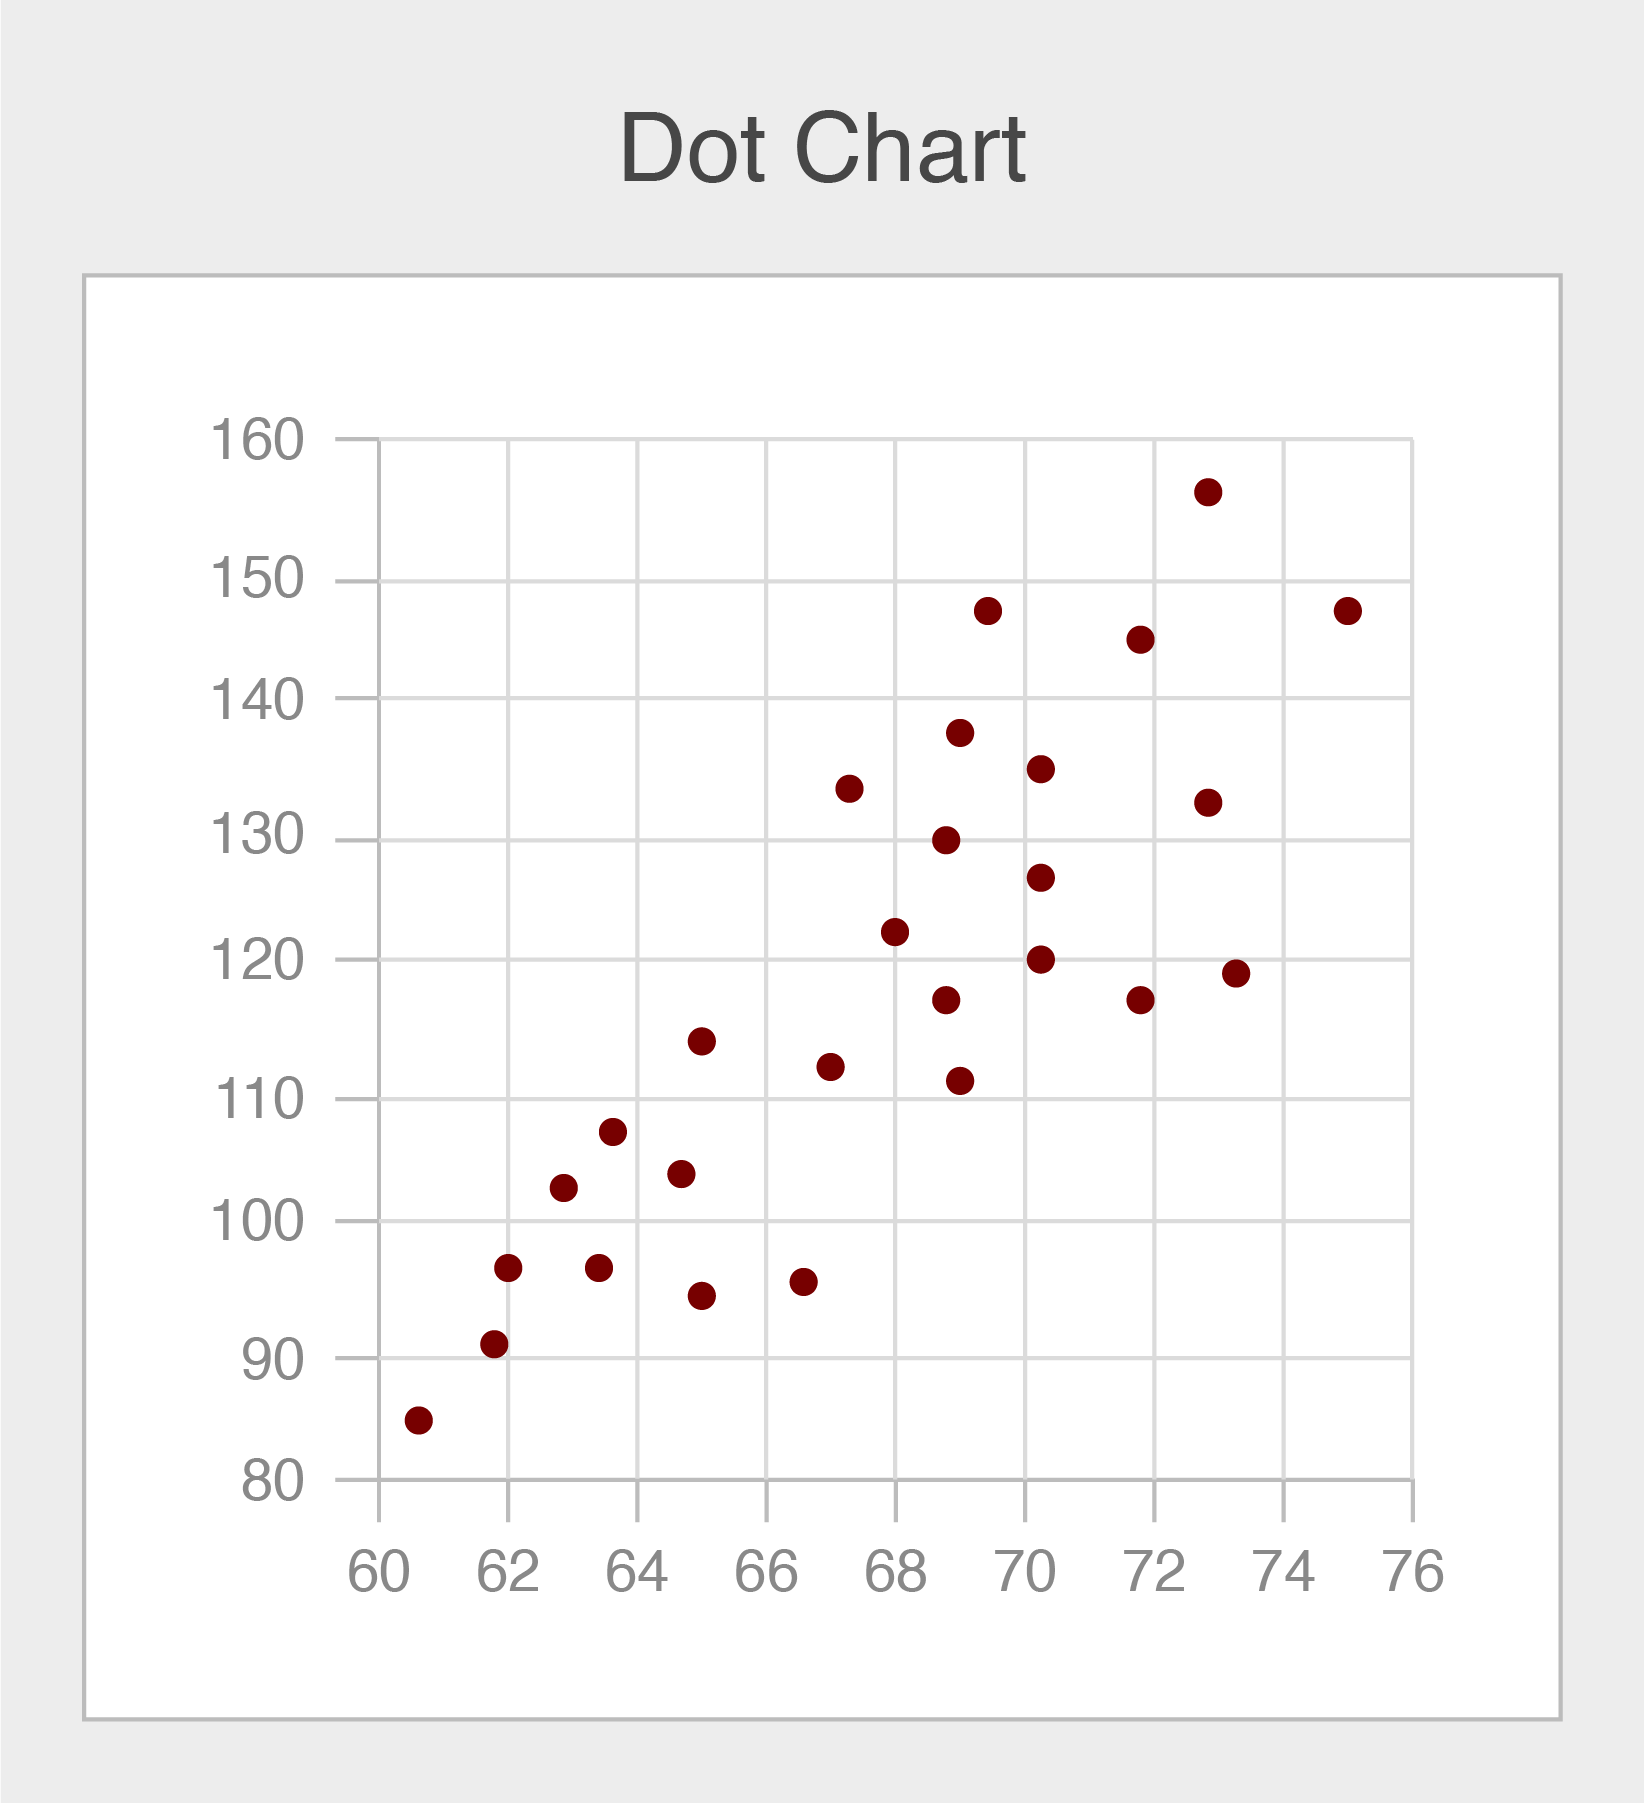 Example of a dot chart showing dots on an x- and y-axis.